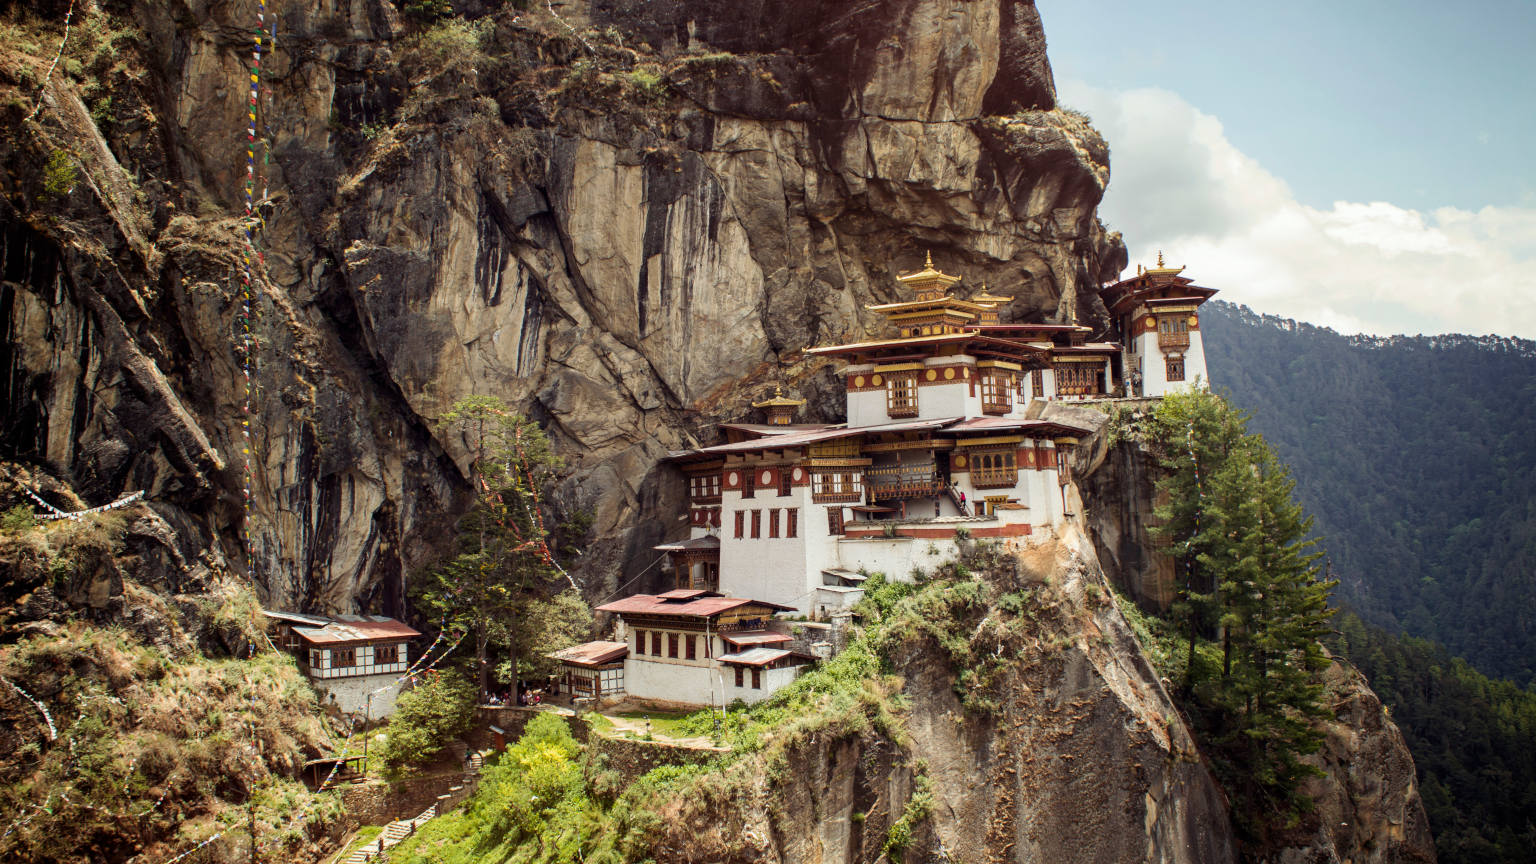 Bhutan-Paro-Valley-Tigers-Nest-Monastery-Mountain-Cliff-Mai-Anh-Dinh-banner